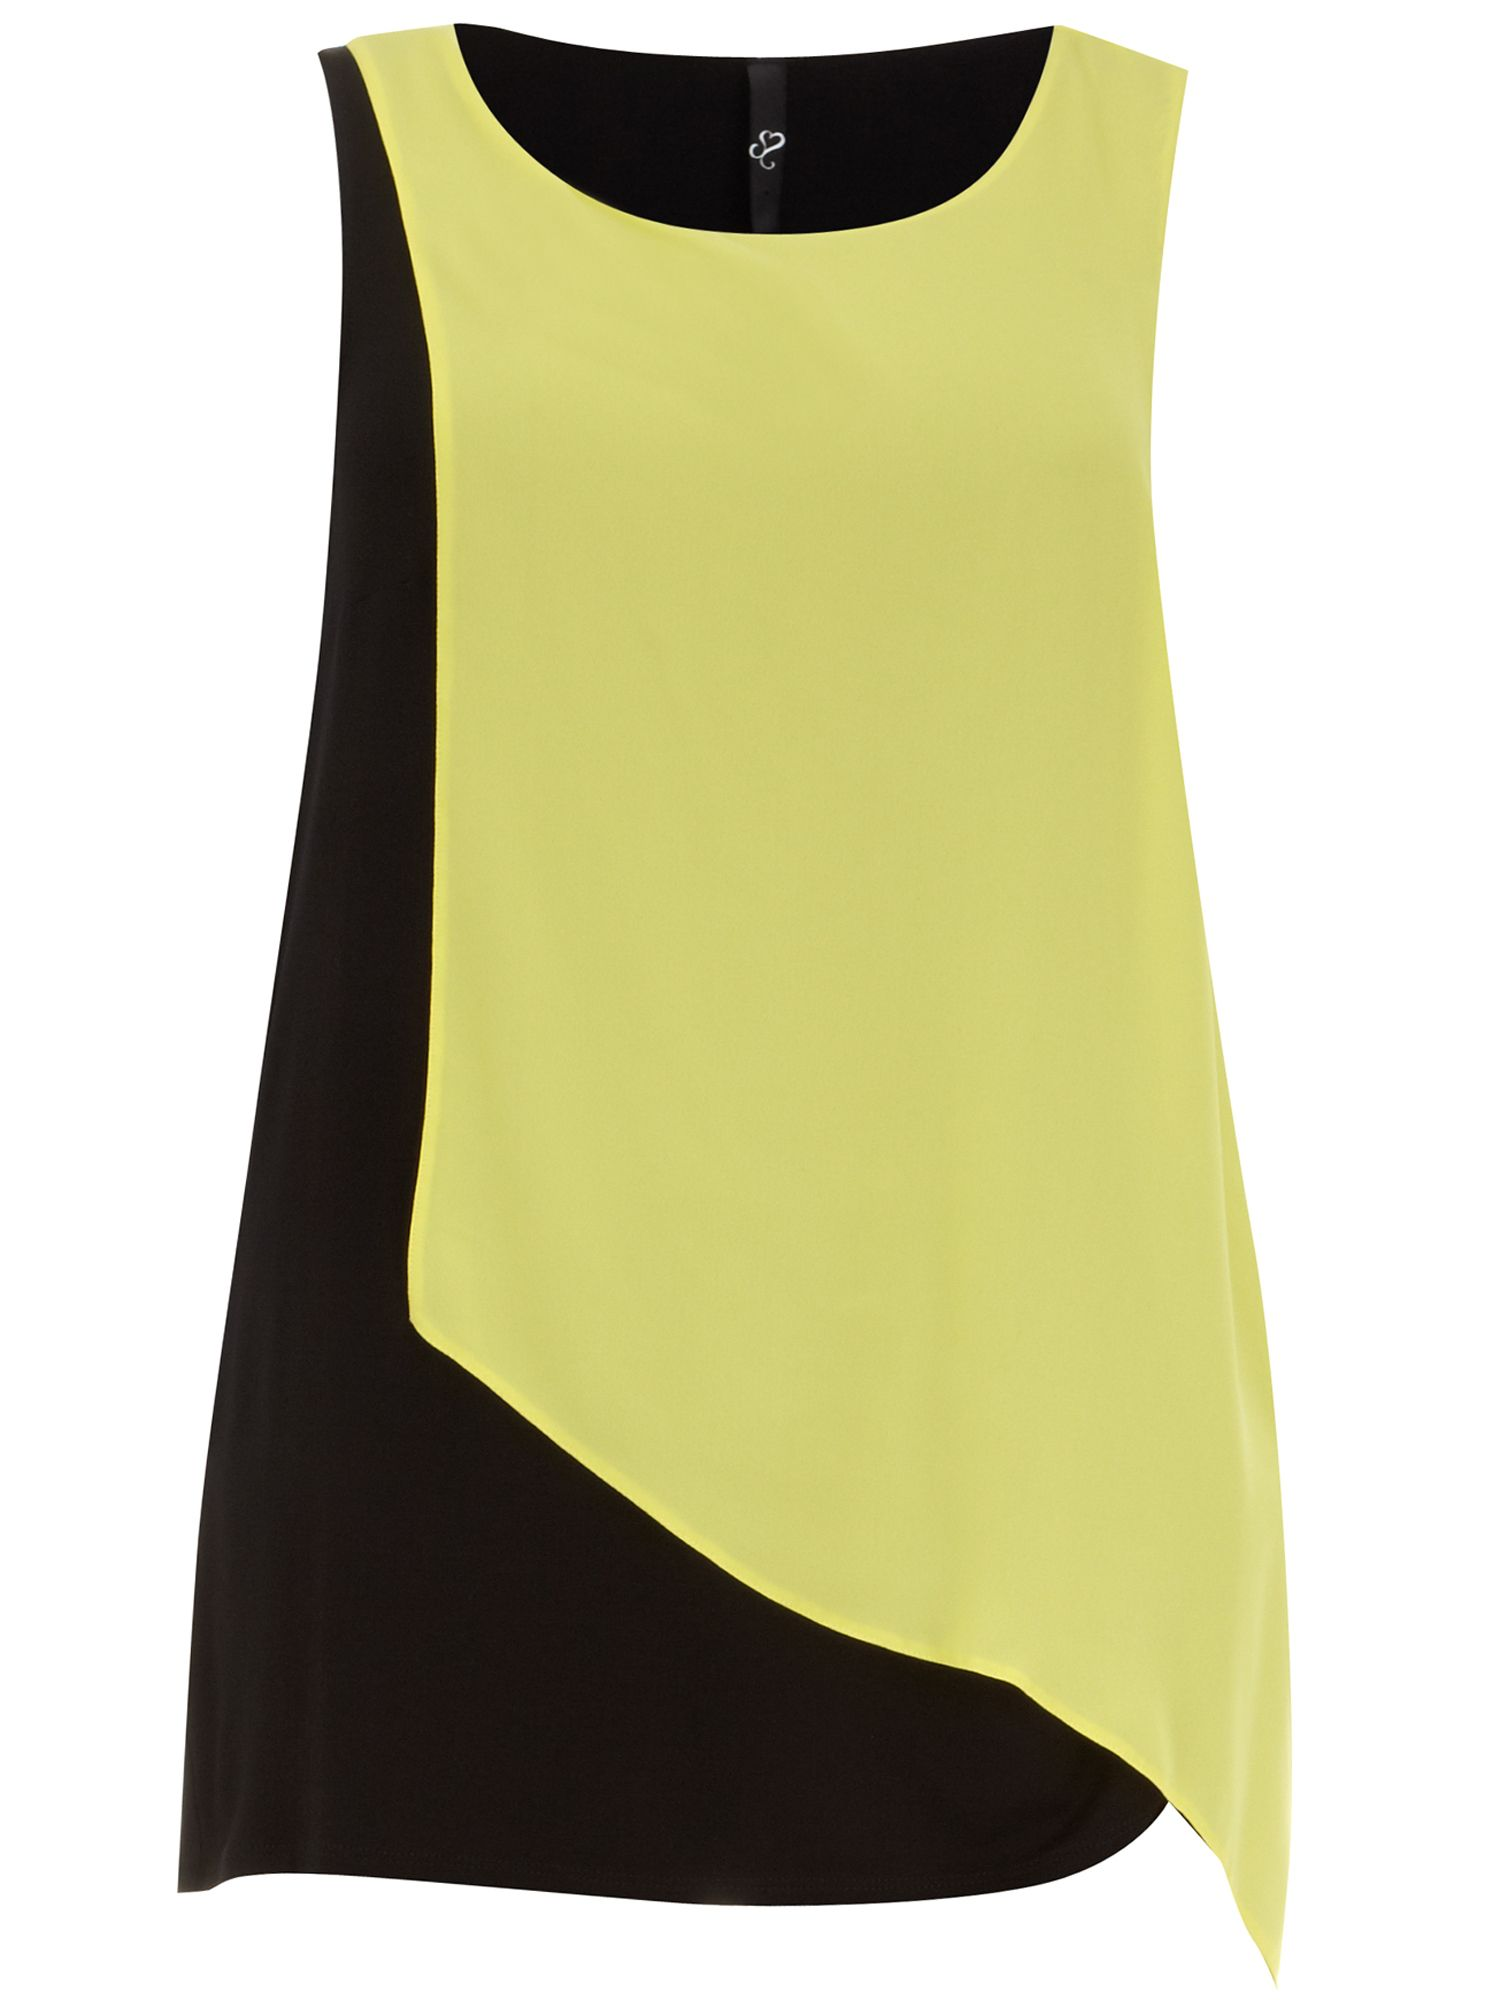 Sleeveless overlay top